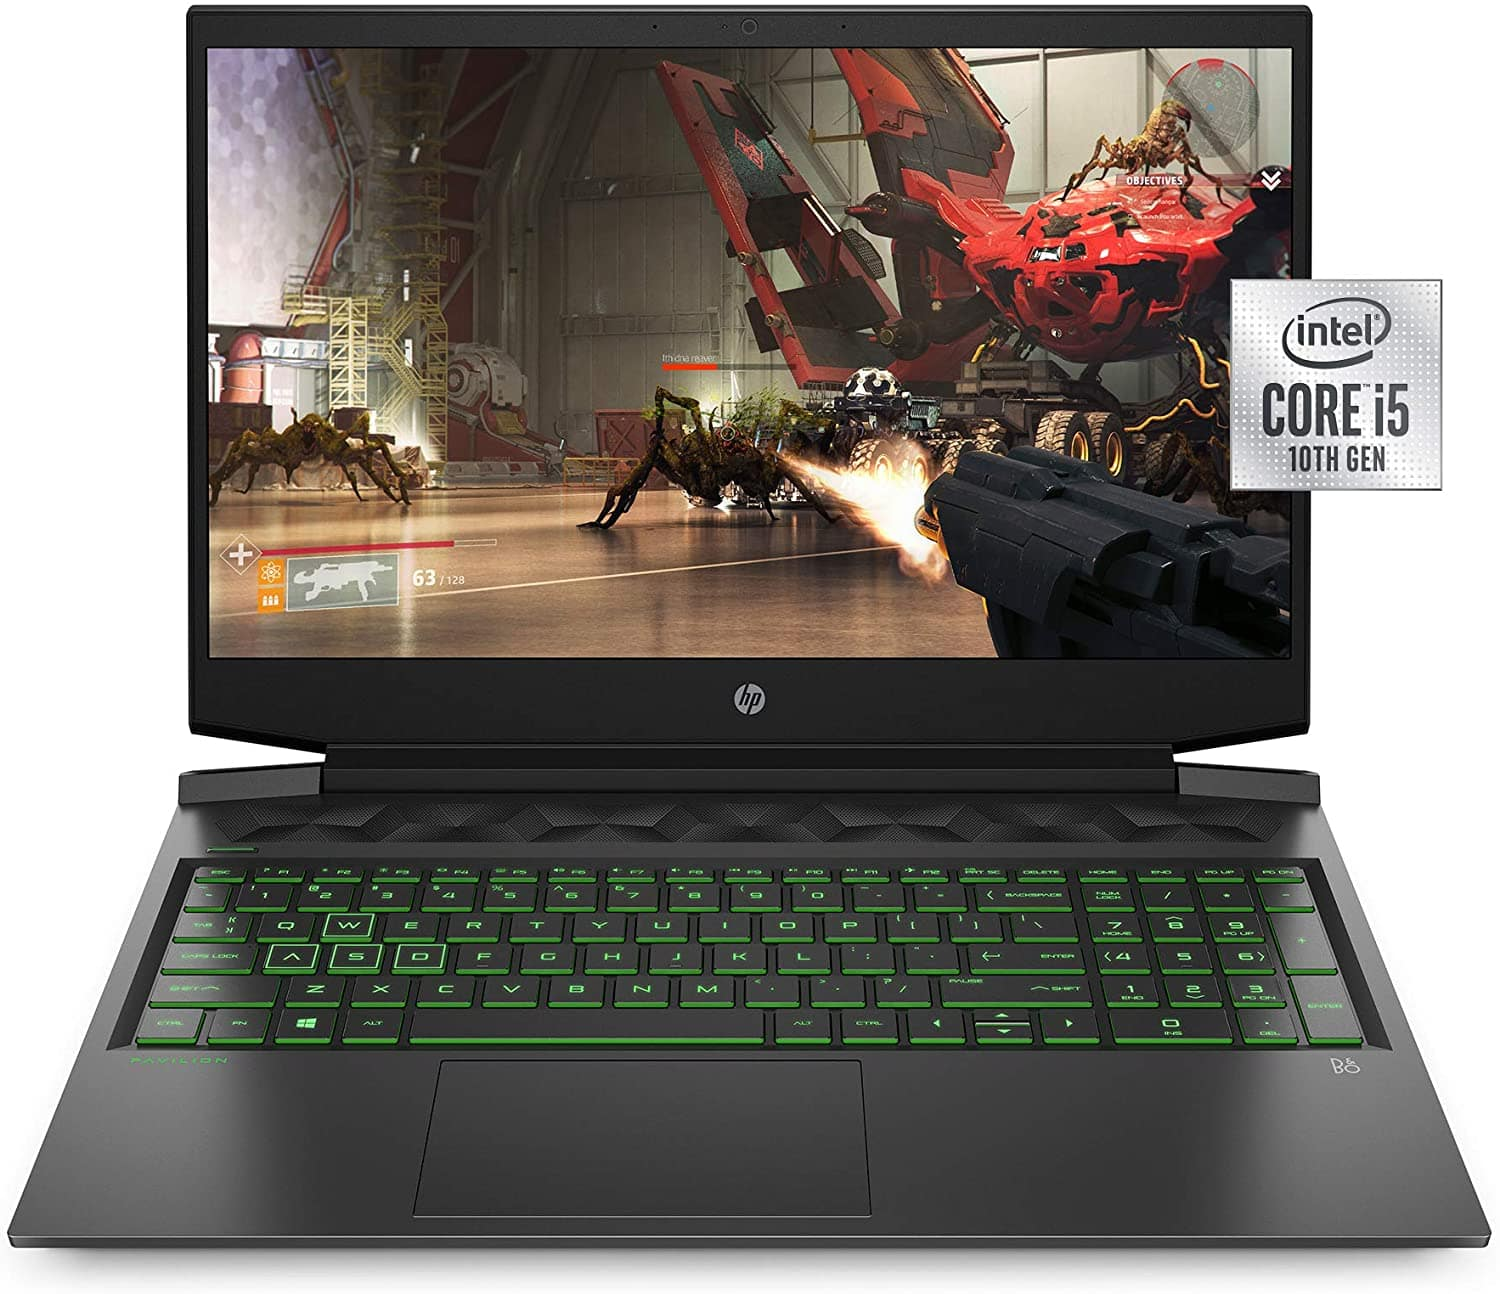 """16"""" HP Pavilion 16″ FHD i5-10300H 2.5GHz / NVIDIA GeForce GTX 1650 / 8GB RAM / 256GB SSD $594 (plus tax) with free shipping (open box)"""